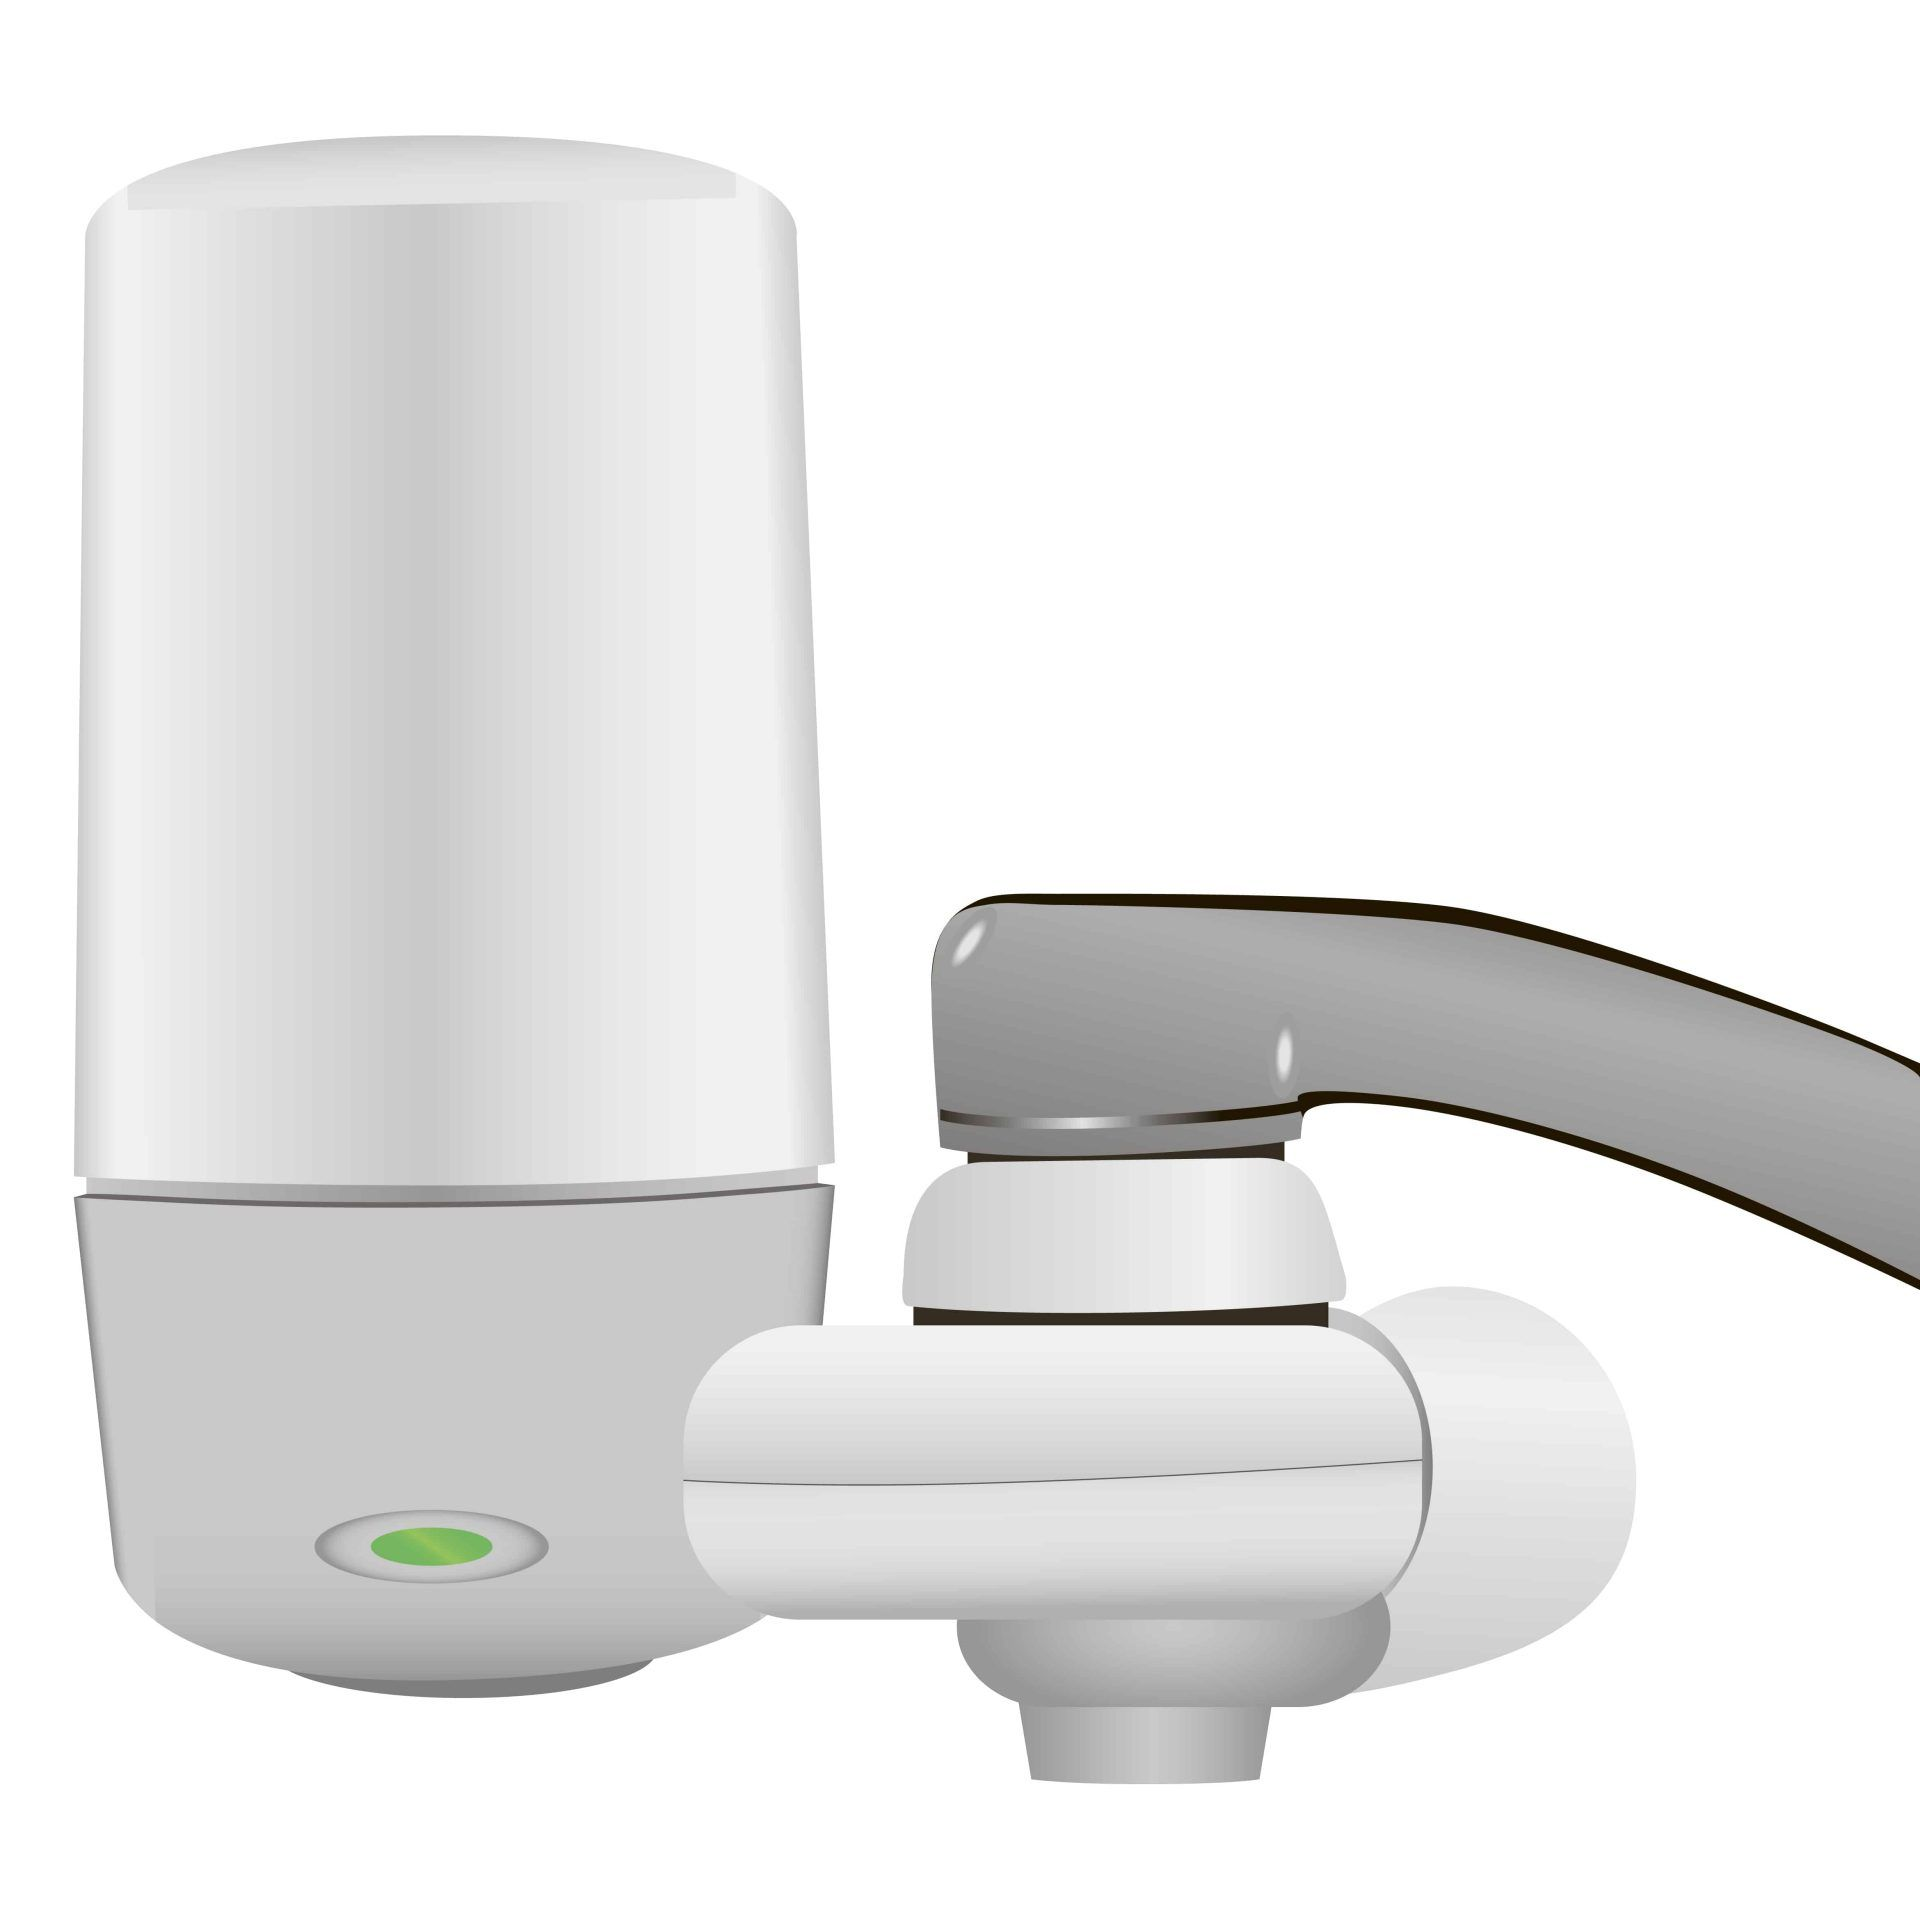 Household filter faucet connection system. Vector illustration.